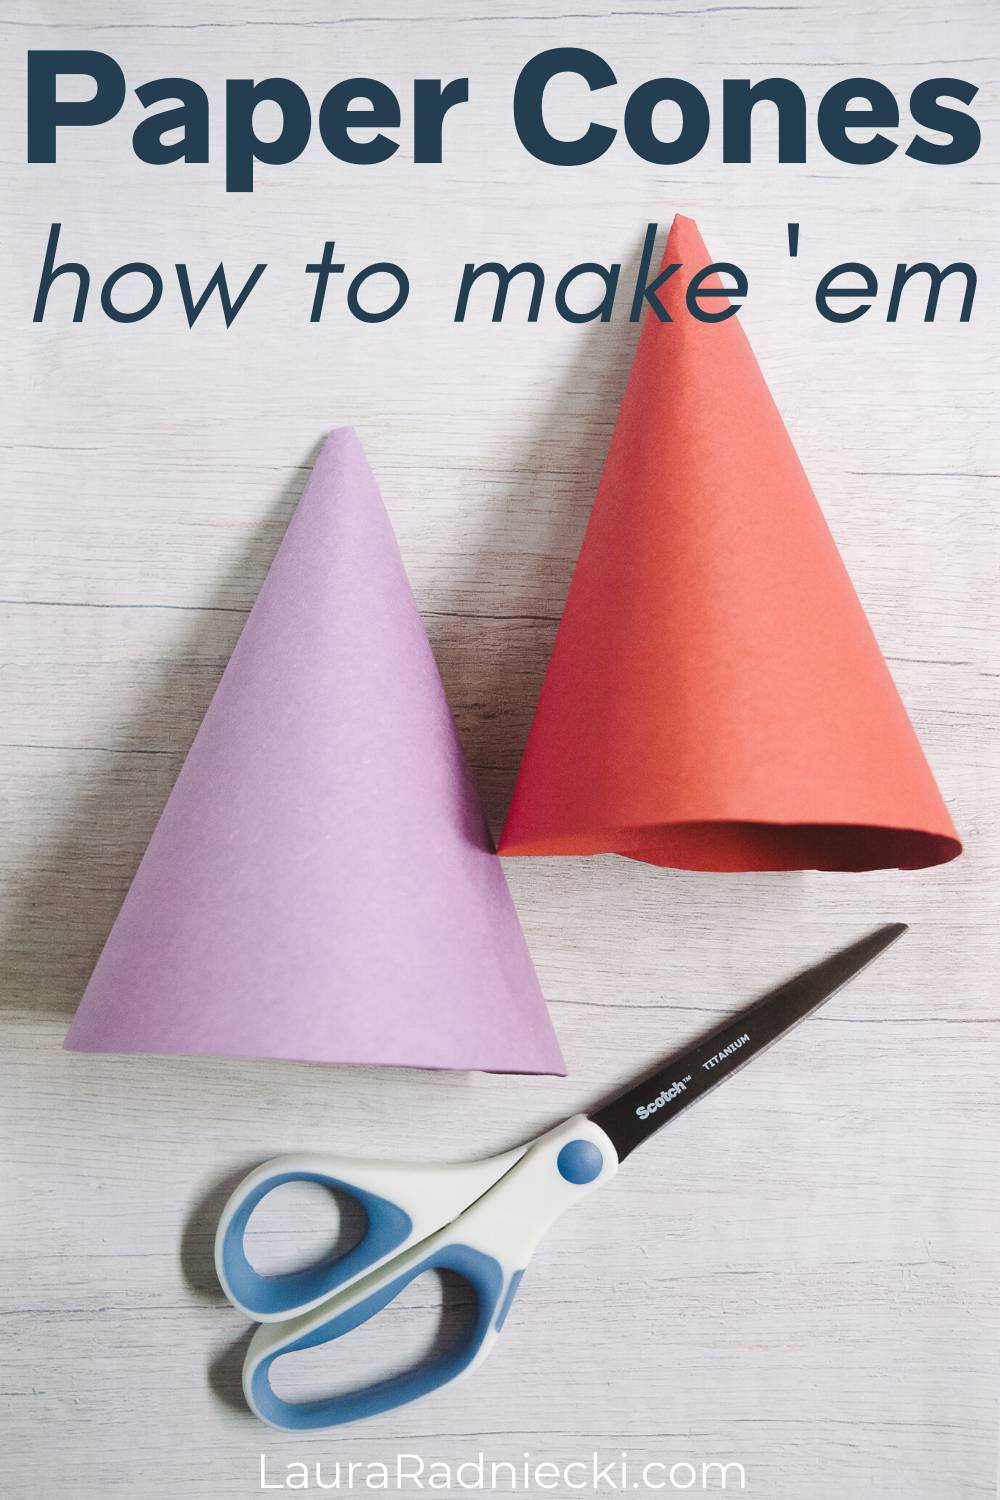 paper cones, how to make them